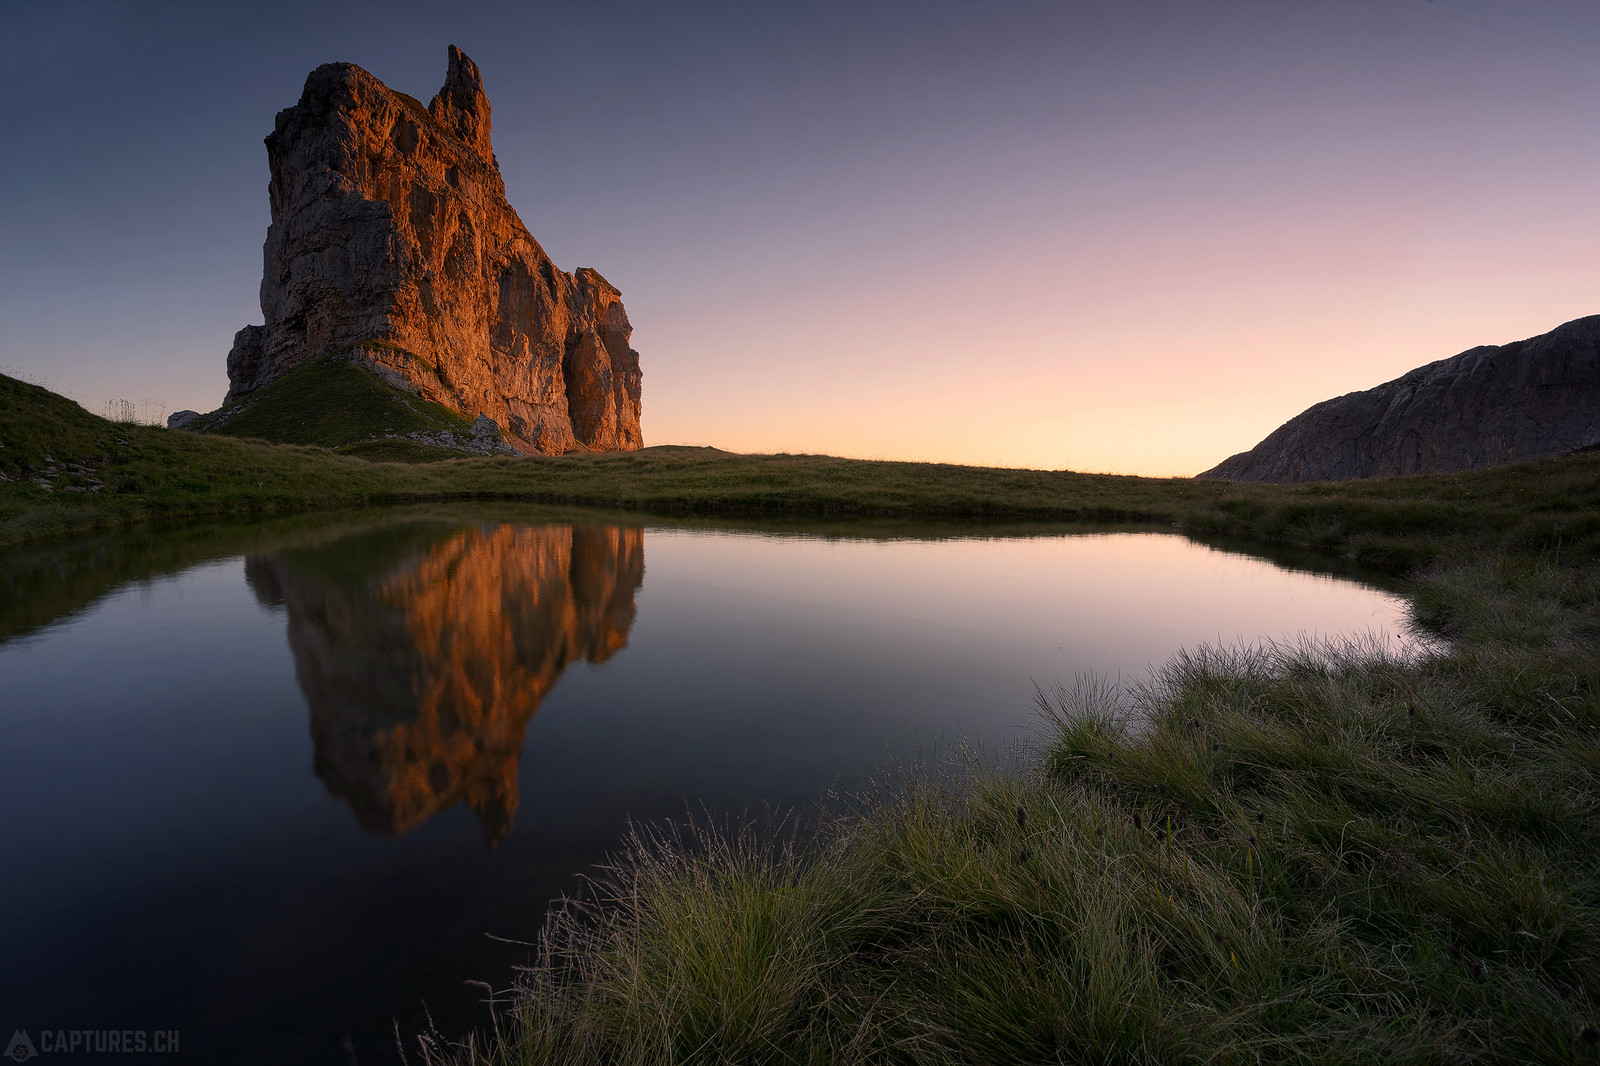 Red mountain - Achslenstock